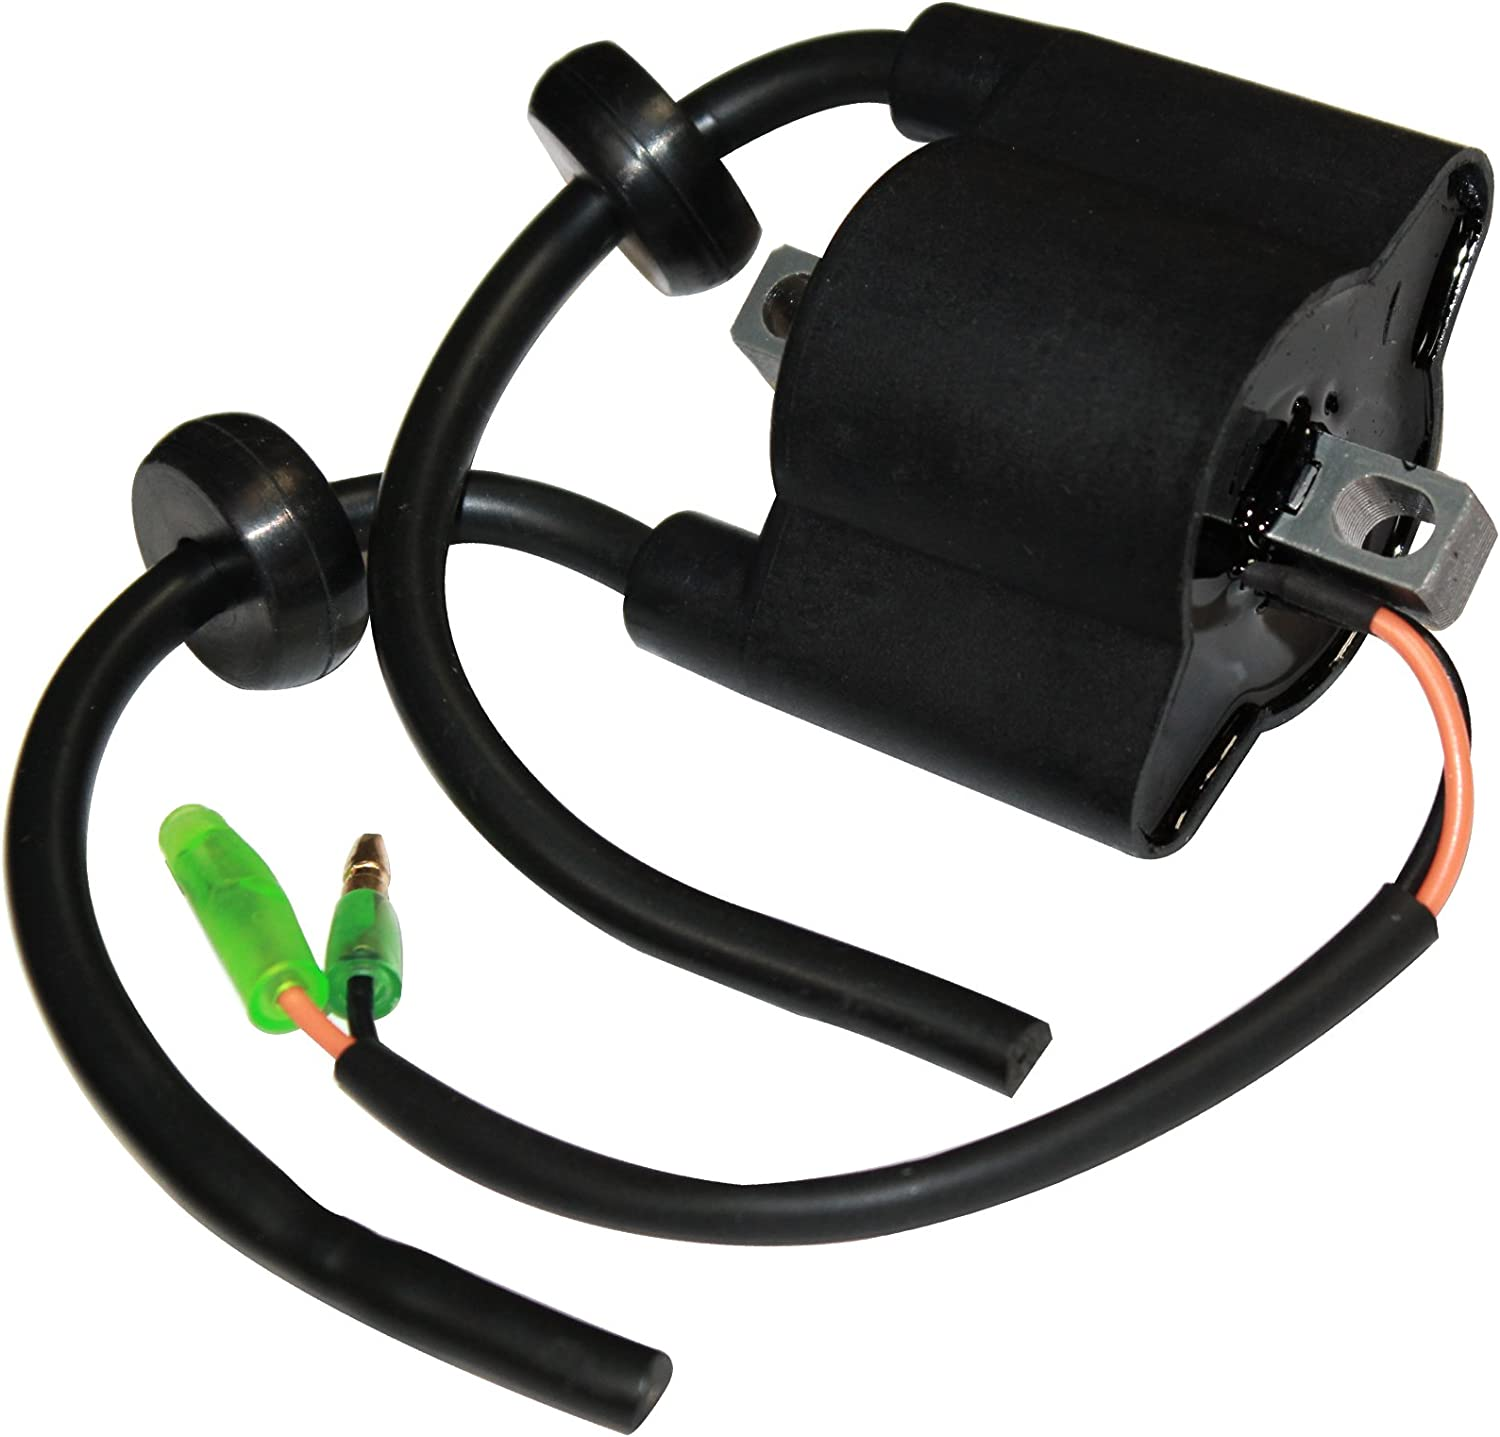 IGNITION COIL FOR MERCURY MARINE OUTBOARD 25HP M MH ML MLH 4-STROKE 1998-2006